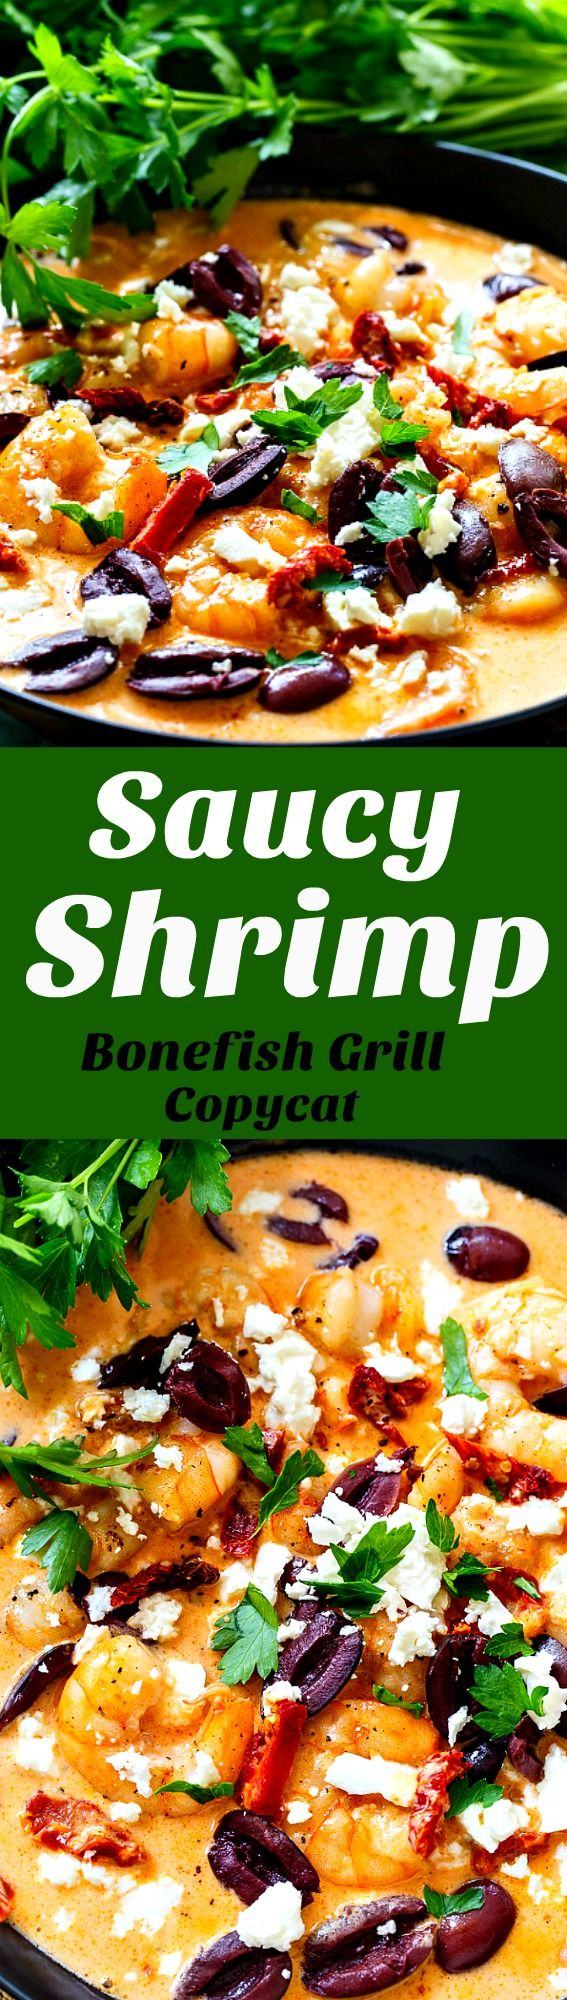 Saucy Shrimp (Bonefish Grill copycat) with sun-dried tomatoes, feta cheese, and olives.